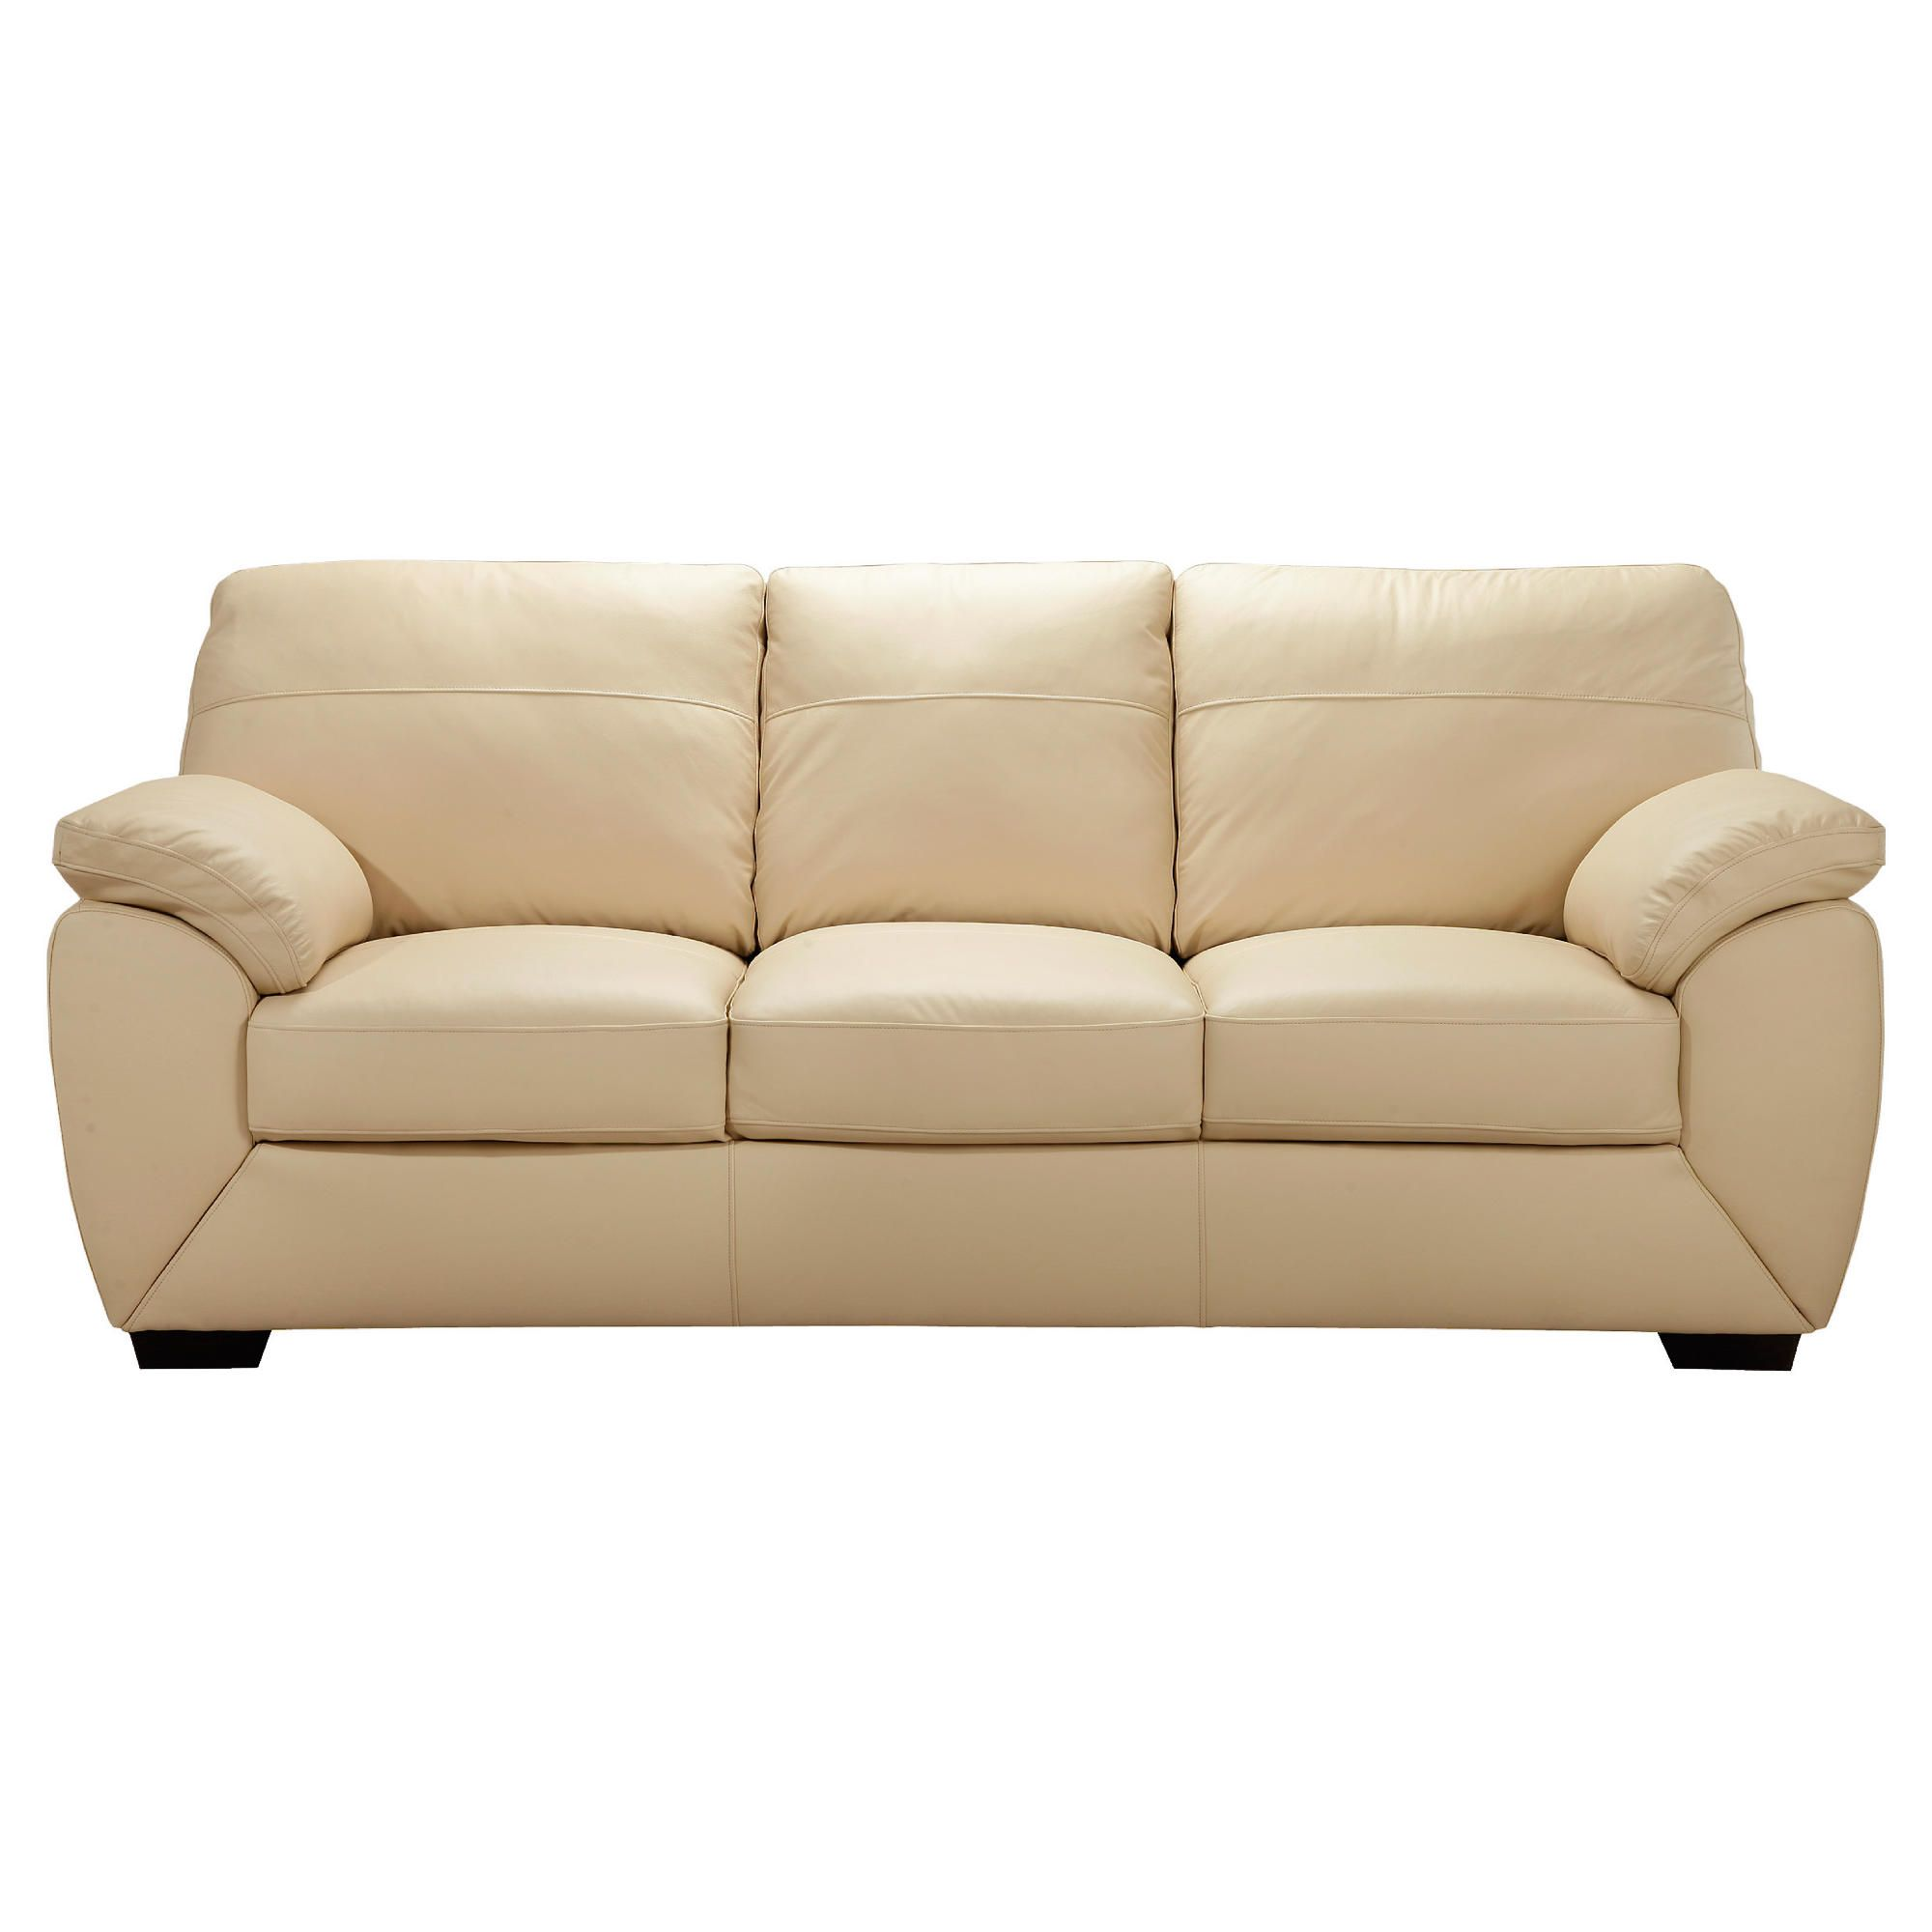 Factory sofas direct uk hereo sofa for Sofa company